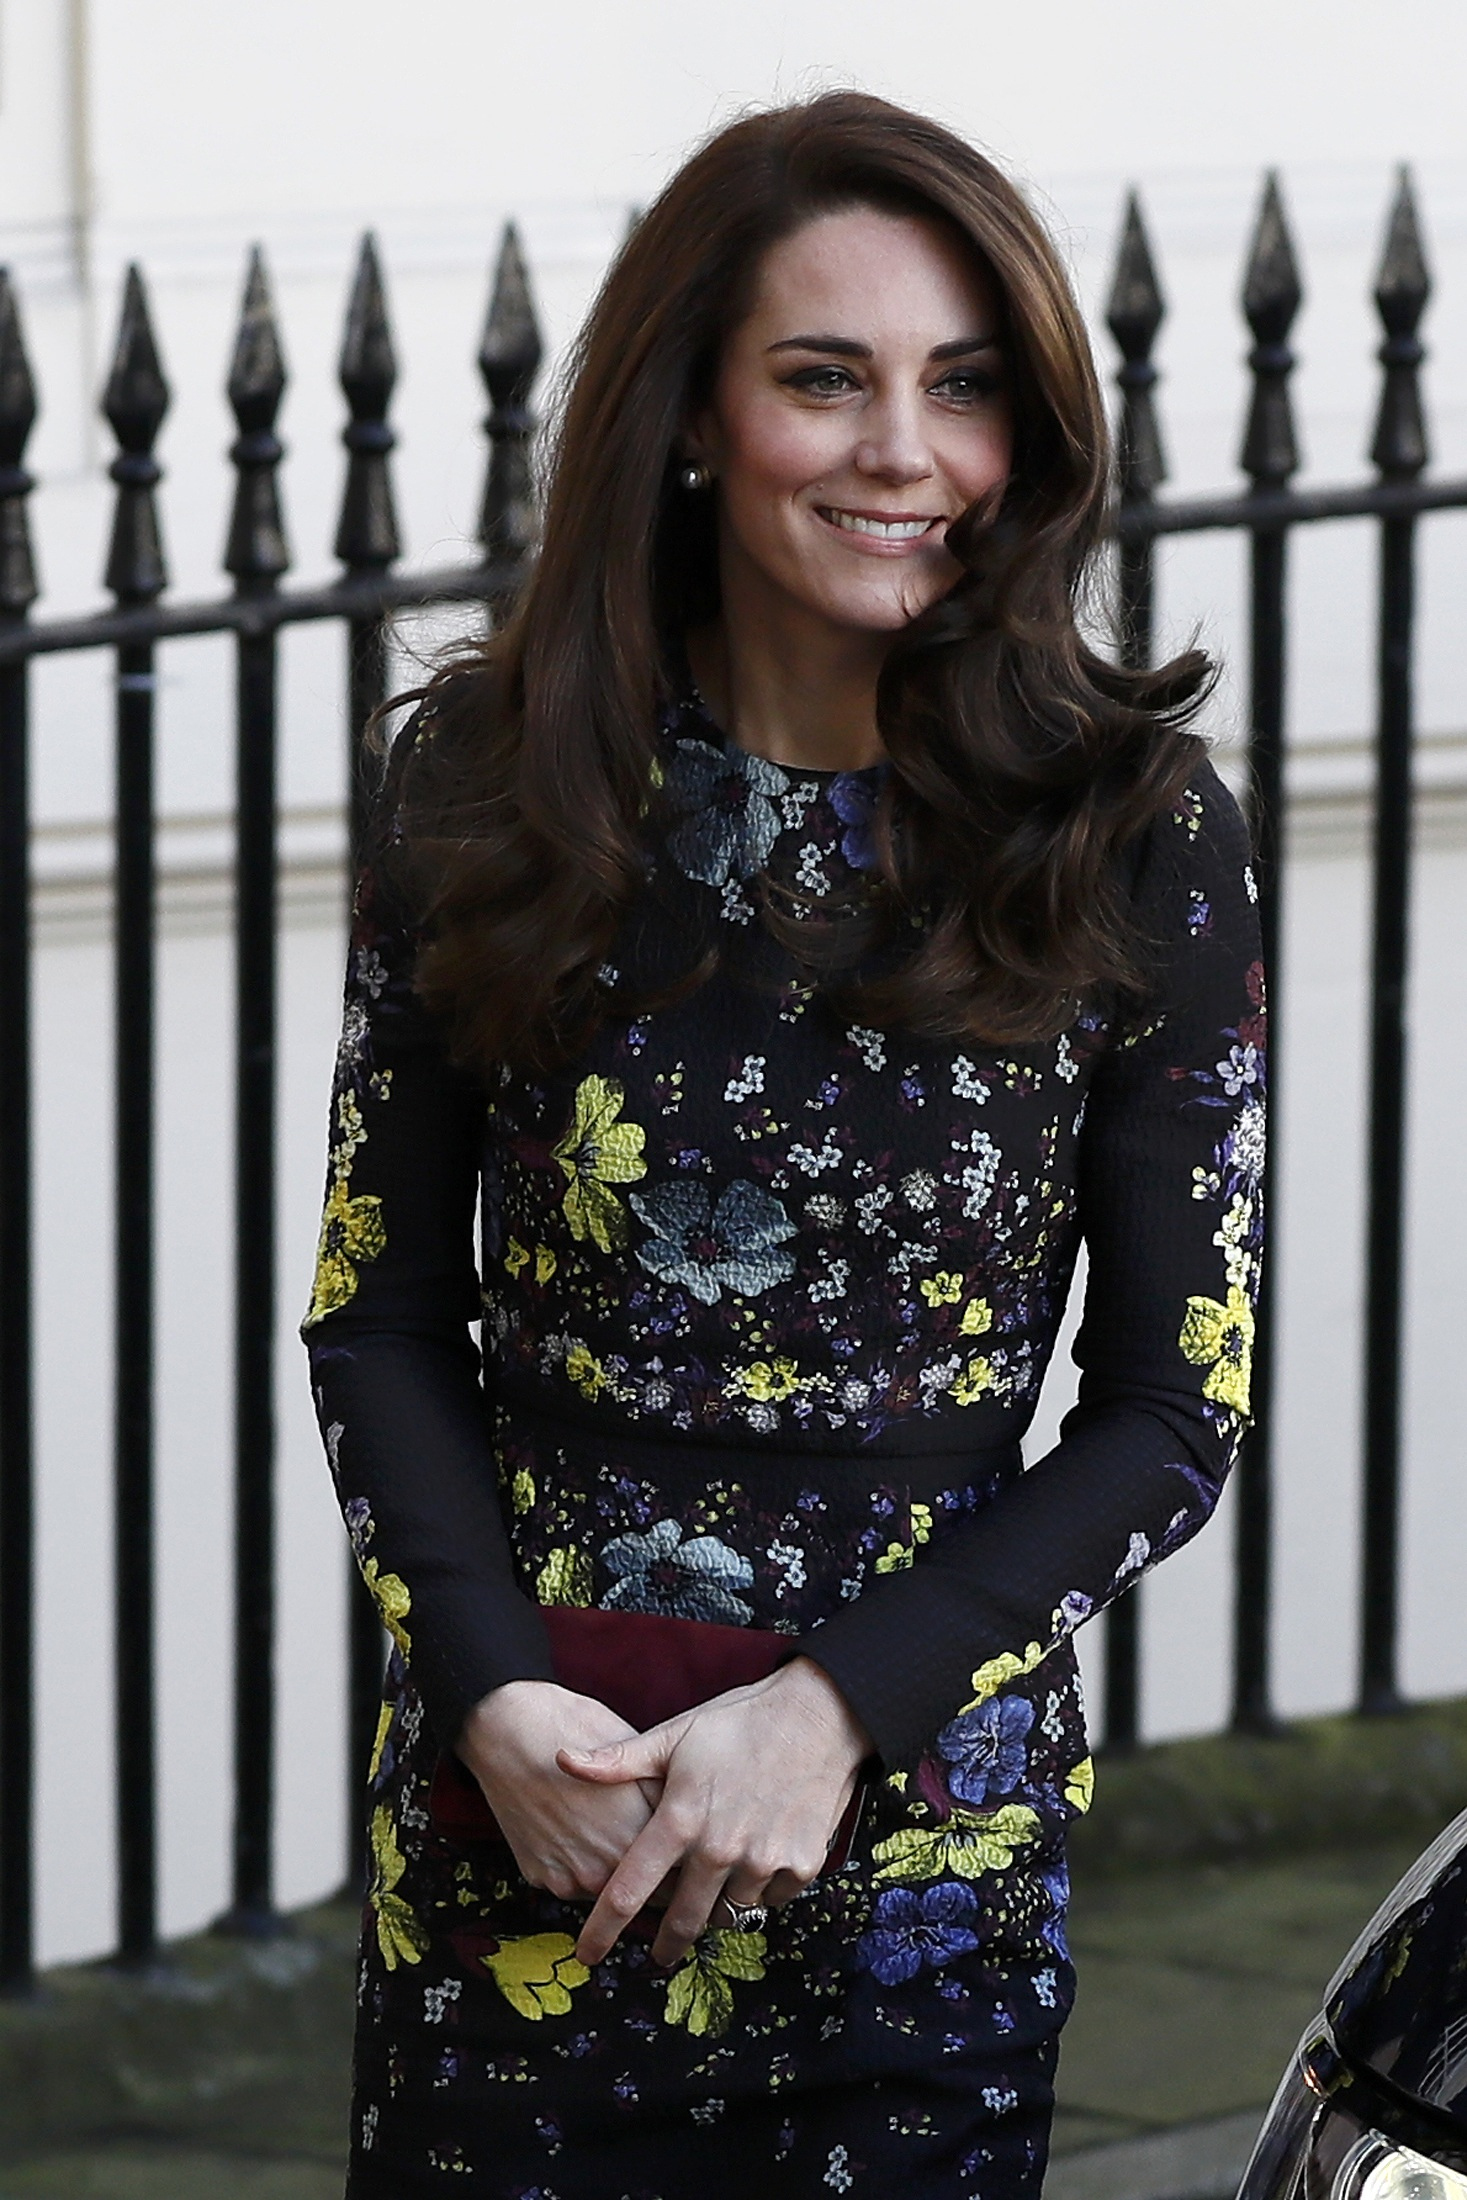 The Duchess of Cambridge arriving at the Institute